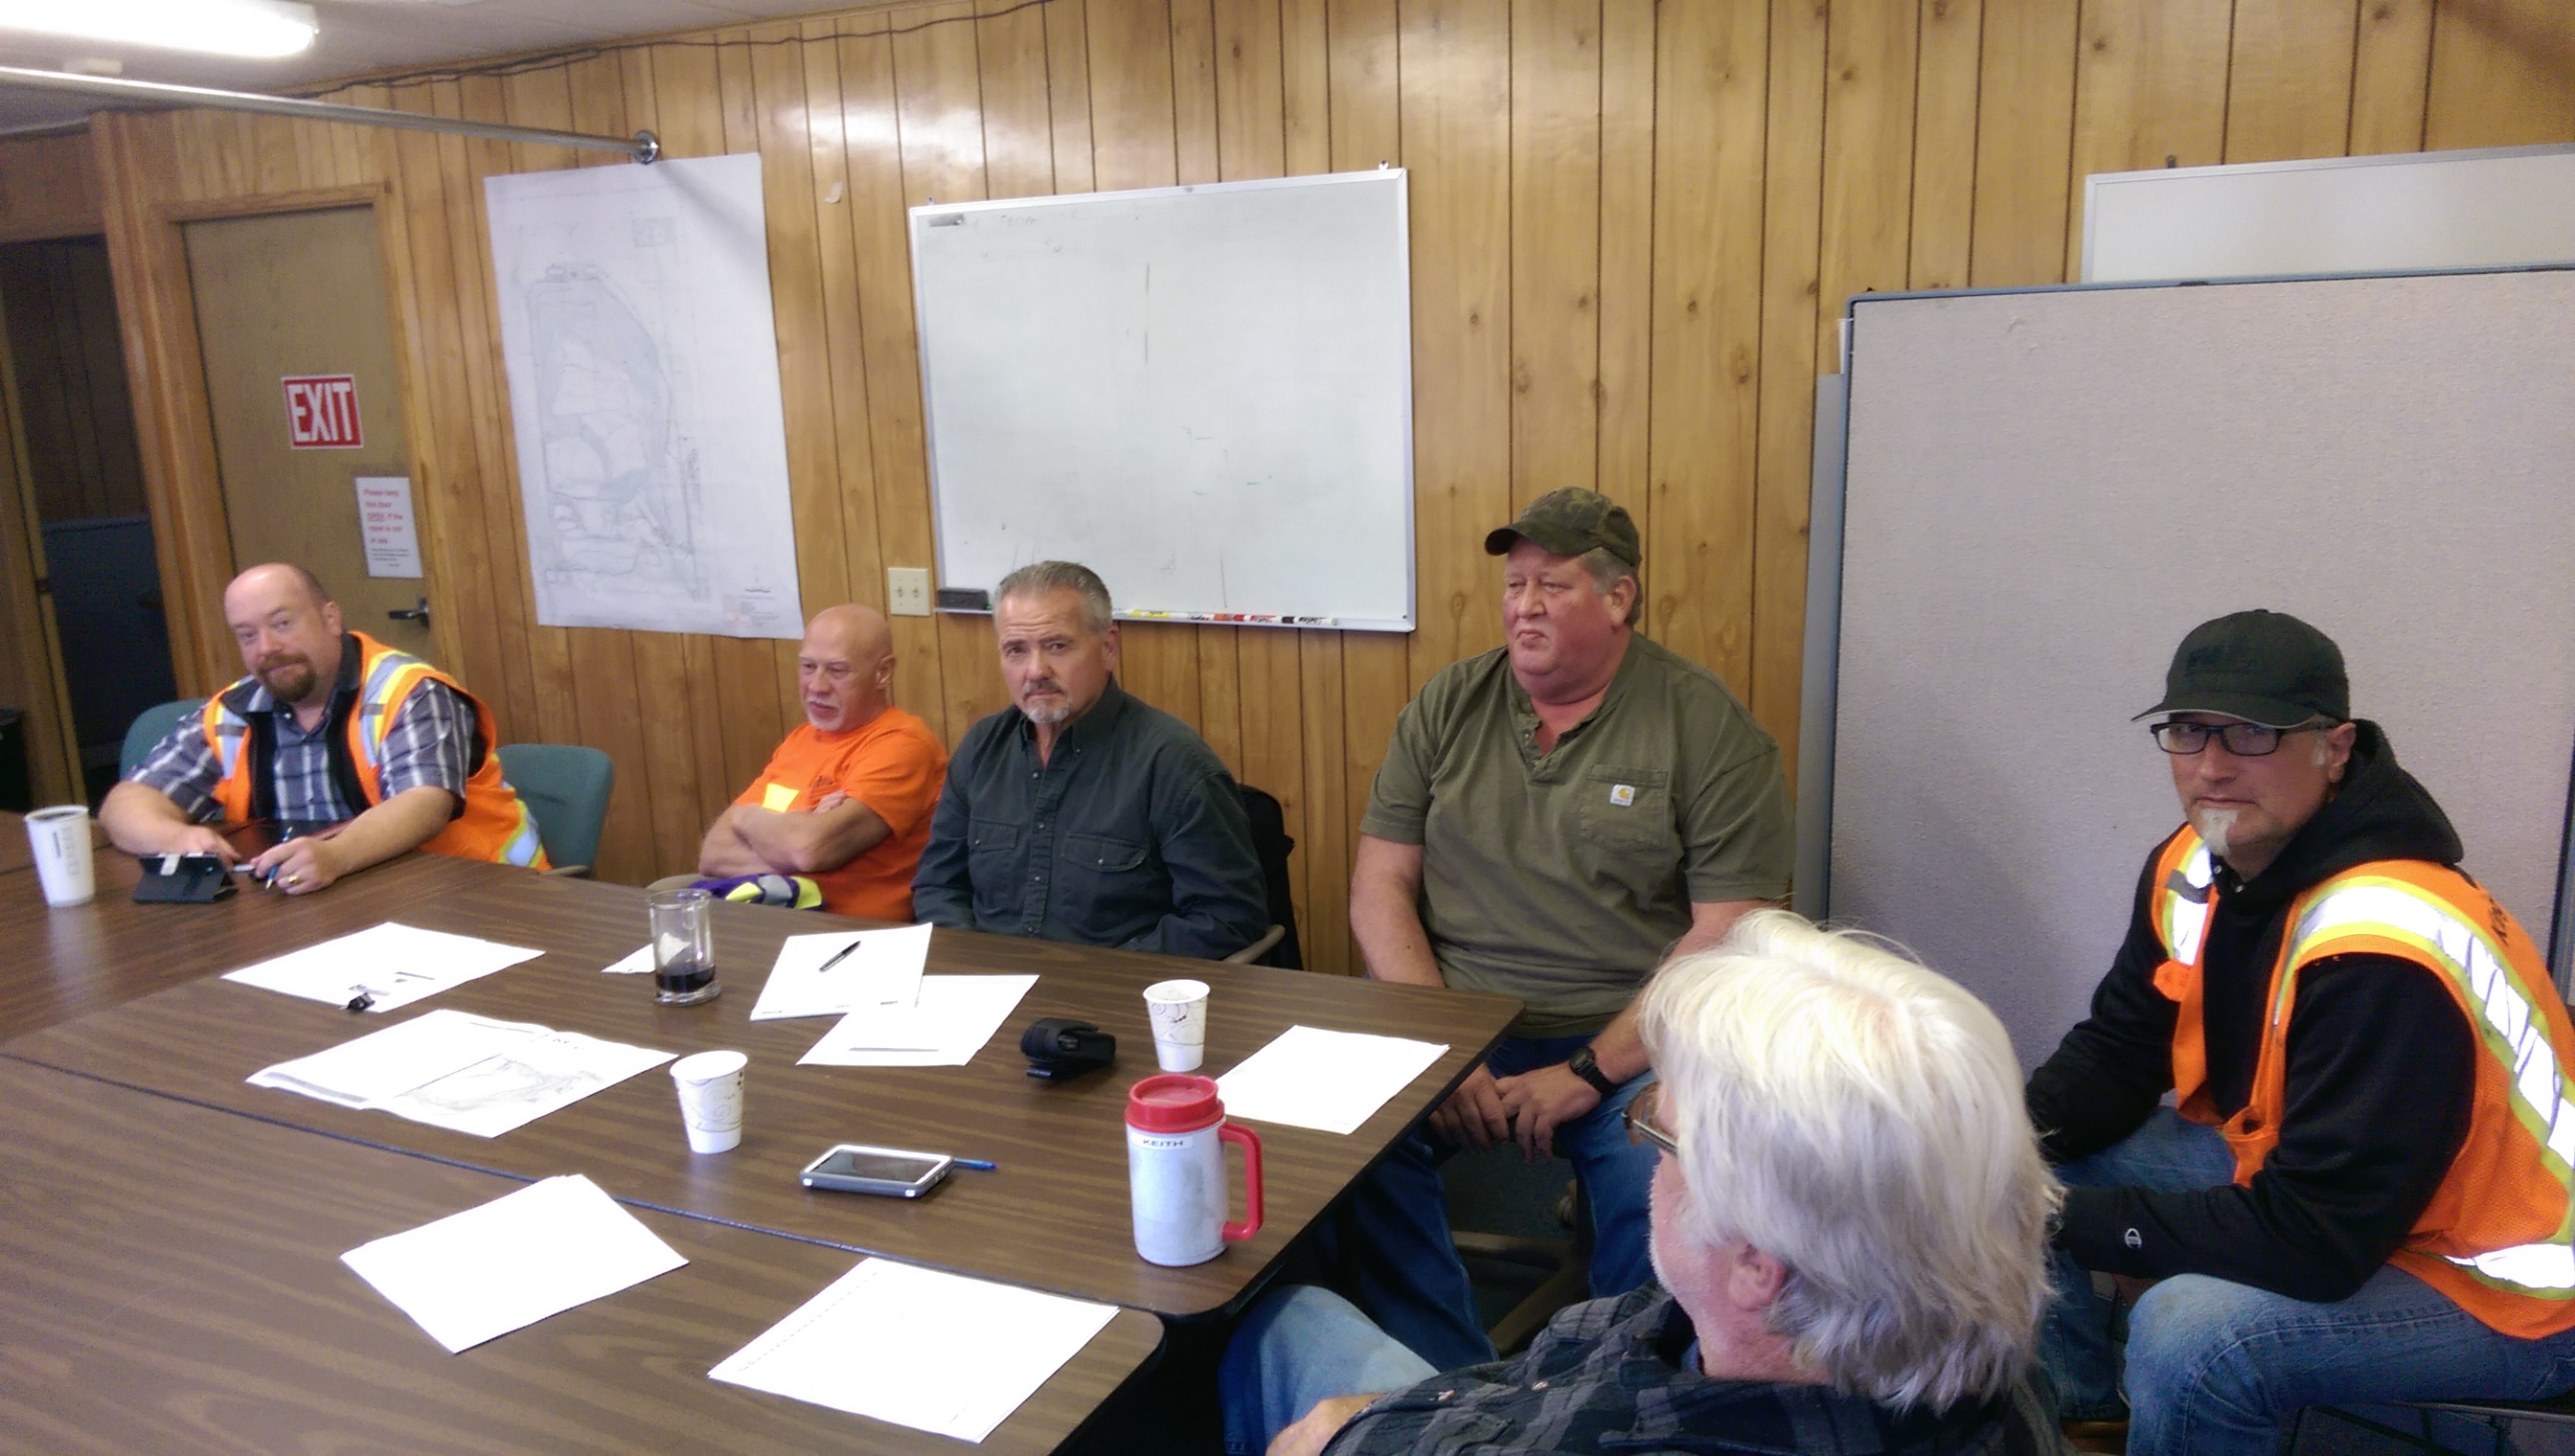 Some members of the Solid Waste Division Lean team discuss possible improvements